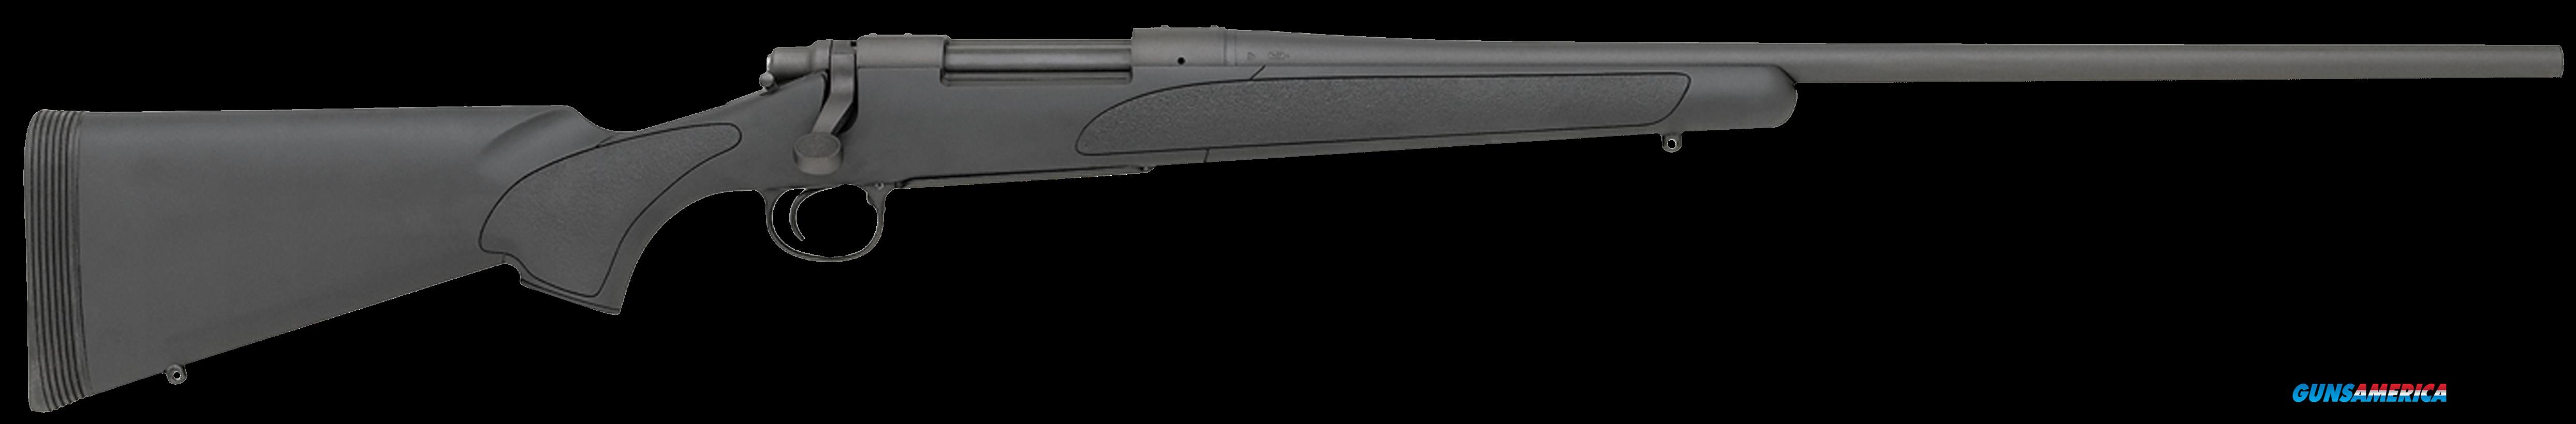 "Remington Firearms 84148 700 SPS Bolt 6.5 Creedmoor 24"" 4+1 Synthetic Black/Gray Stk Blued  Guns > Rifles > R Misc Rifles"